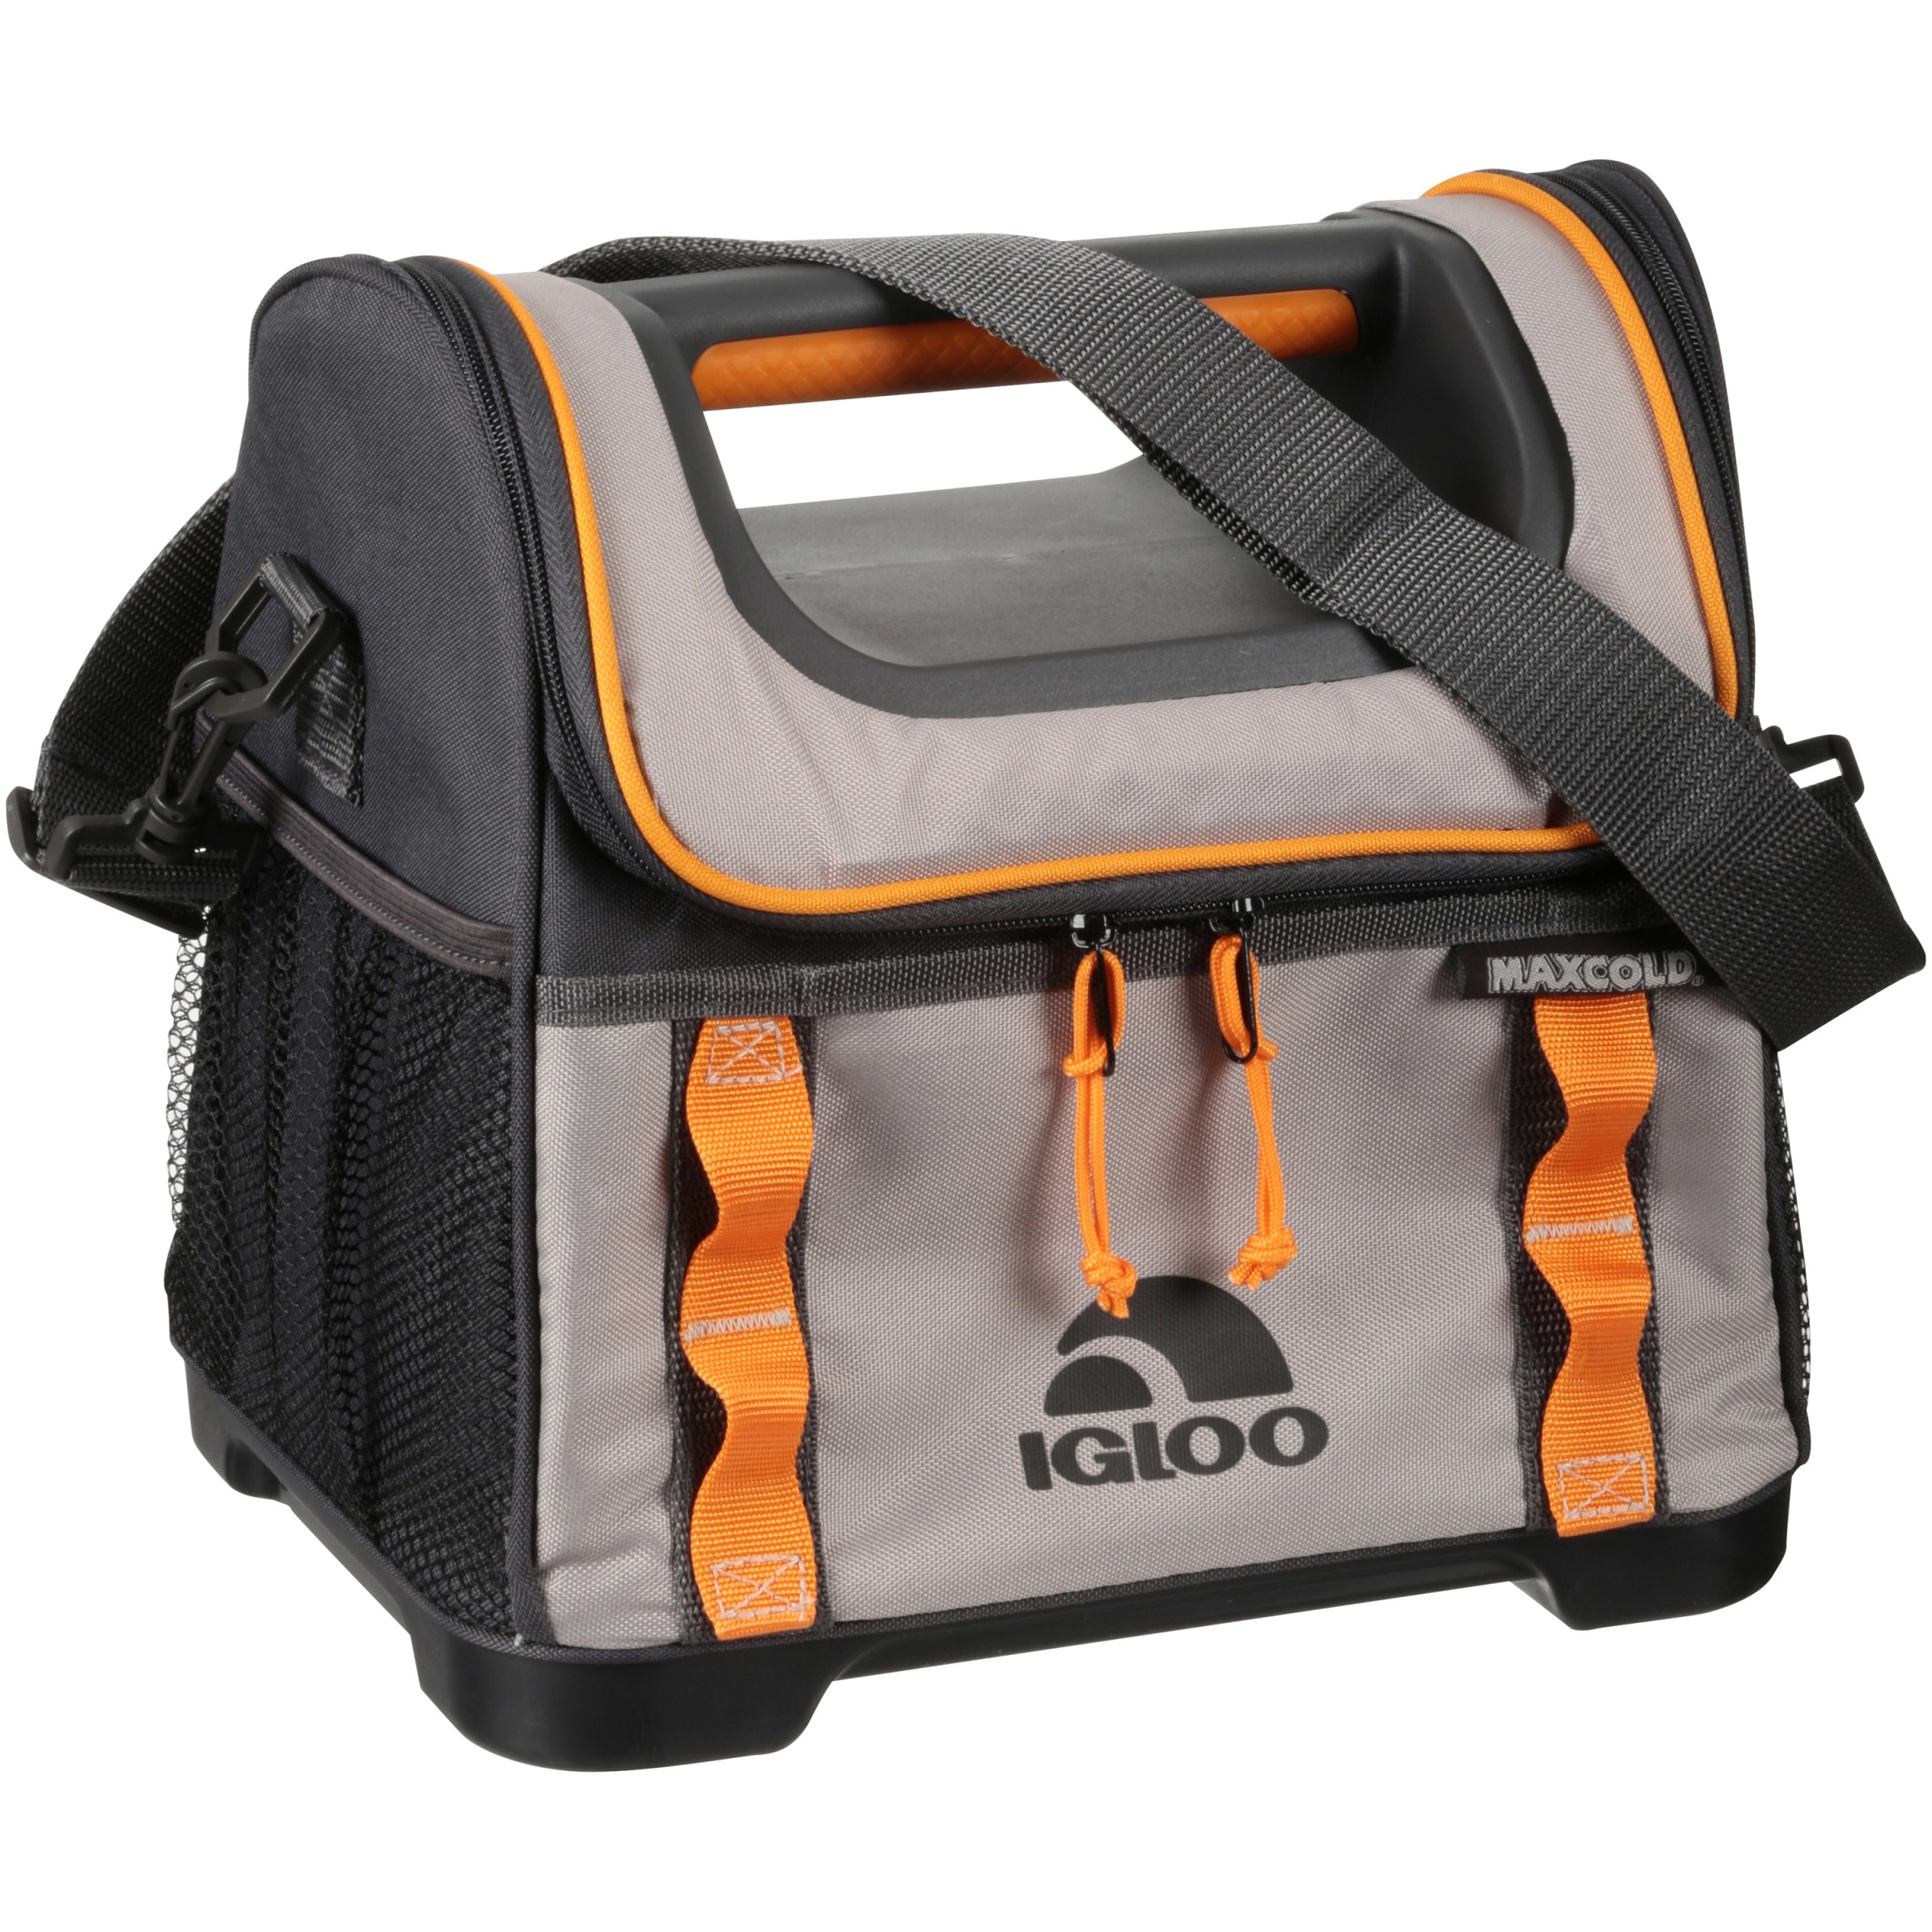 Igloo Playmate Gripper 18 Tan Orange Cooler Bag by Igloo Products Corp.